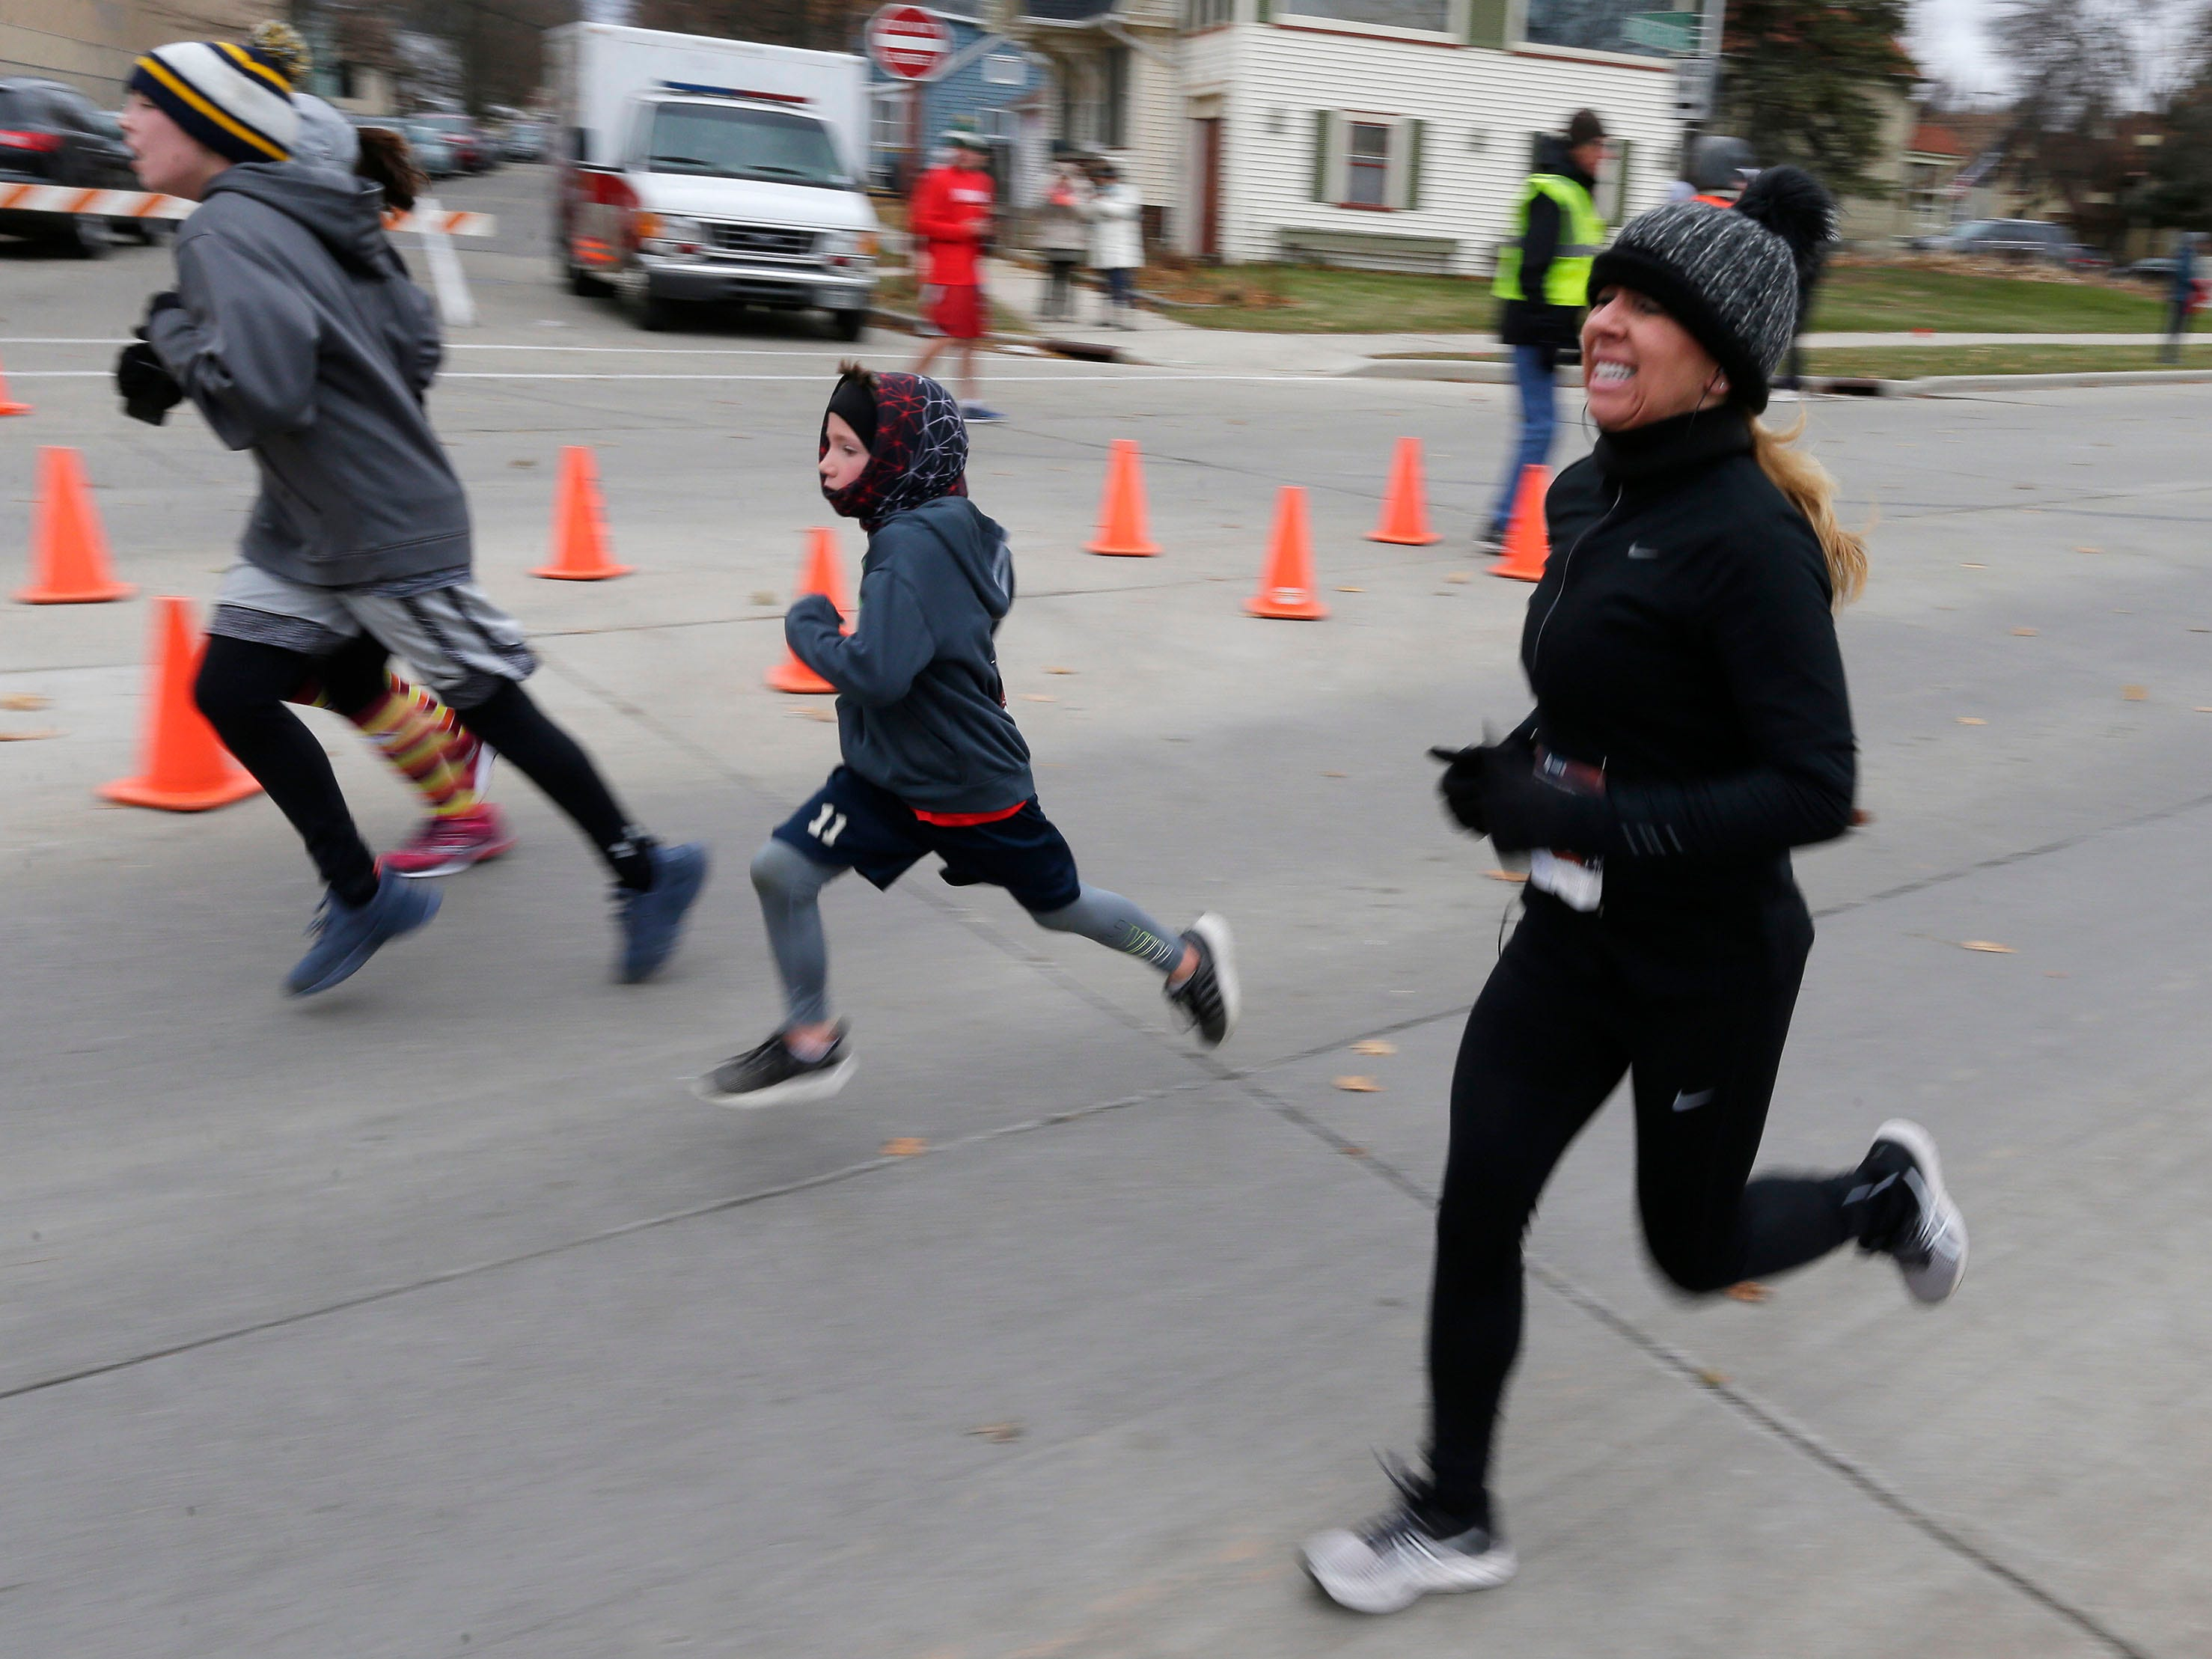 Wendy Klein of Sheboygan, Wis, right, runs during the Doug Opel Run for the Kids, Thursday, November 22, 2018, in Sheboygan, Wis.